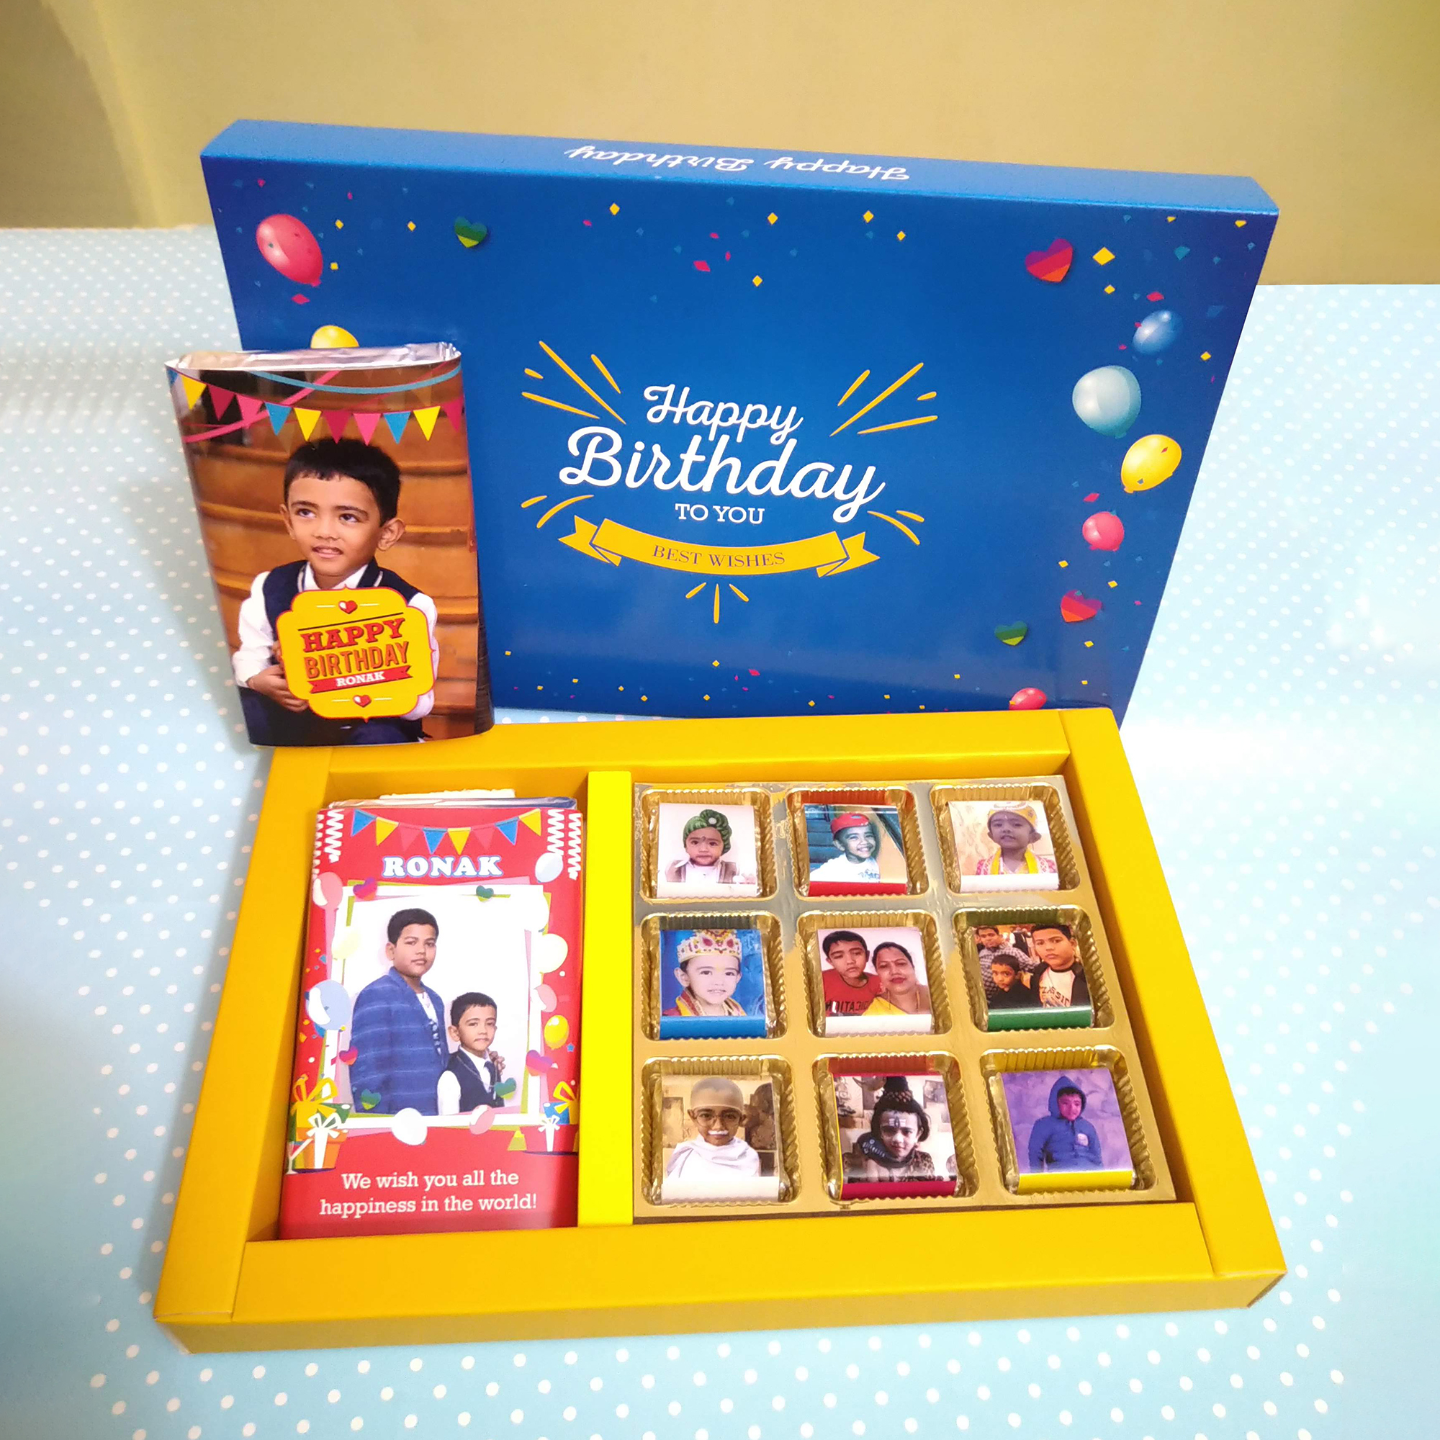 Birthday Gift Blue Box, Personalized Assorted Chocolate (2 Bars + 9 Cubes)